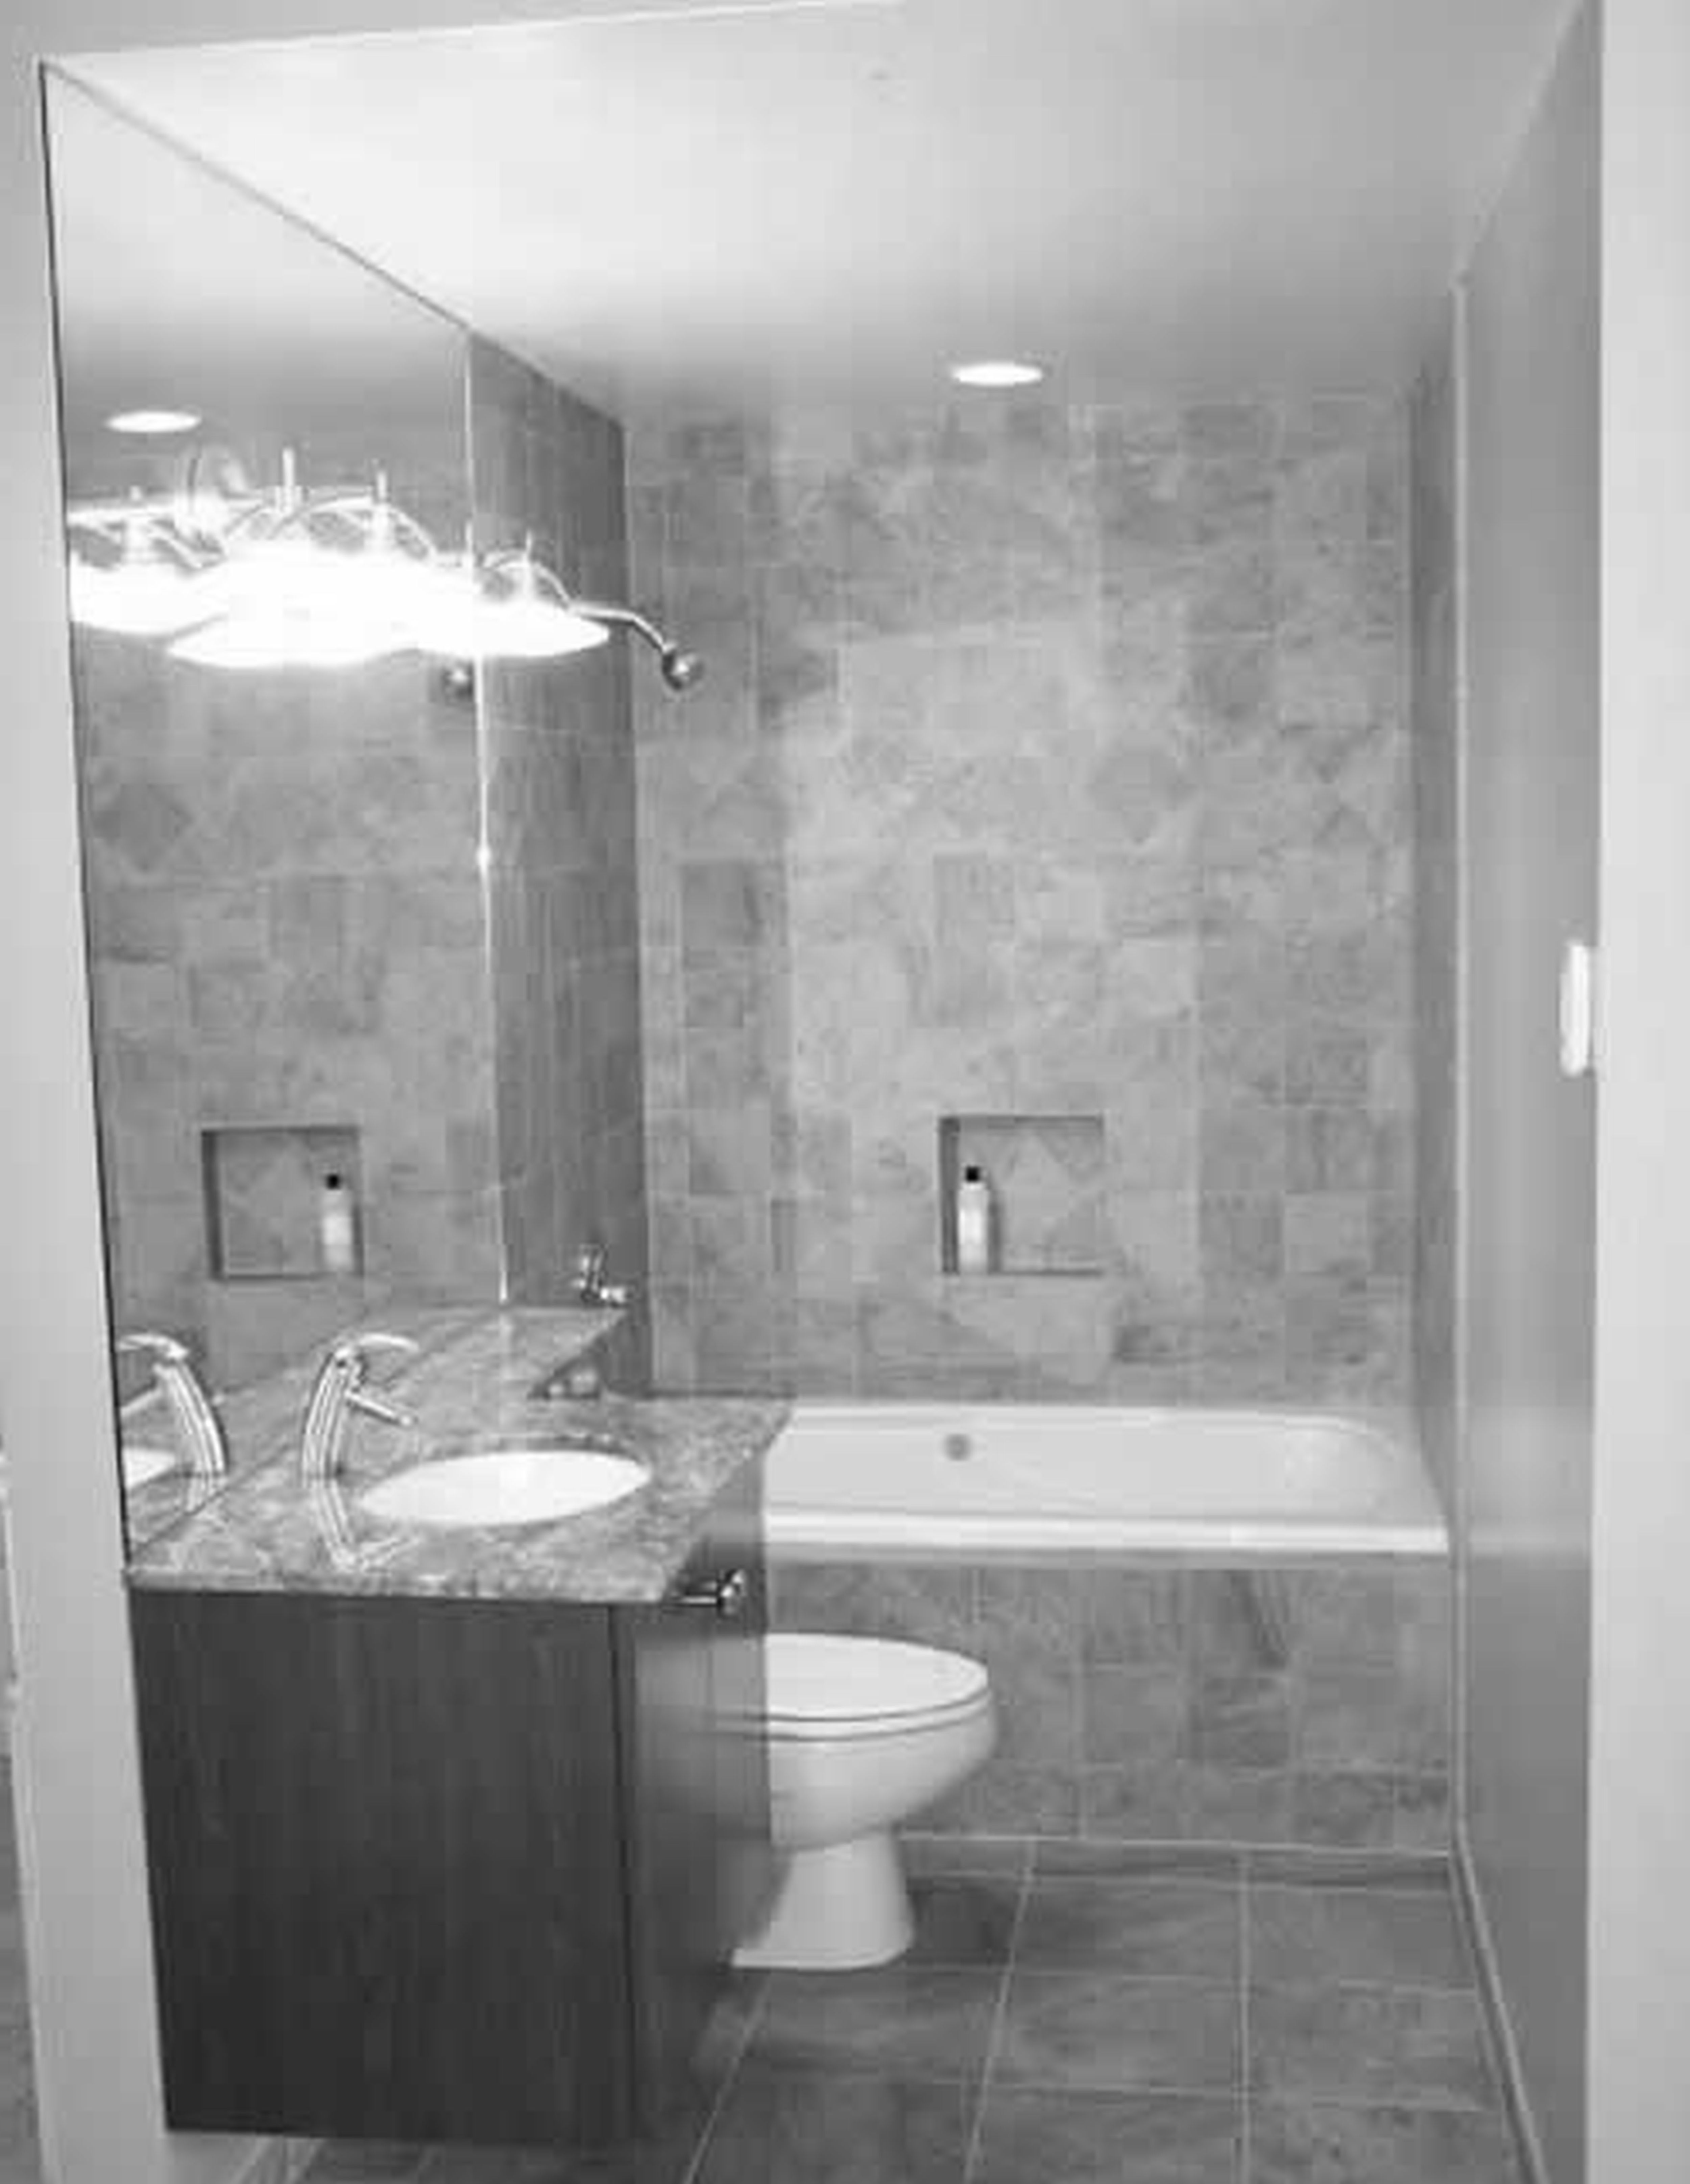 20 Amazing Powder Room Ideas Philippines Allowed For You To My Blog Site With This T Small Bathroom Remodel Bathroom Remodel Cost Small Bathroom Renovations